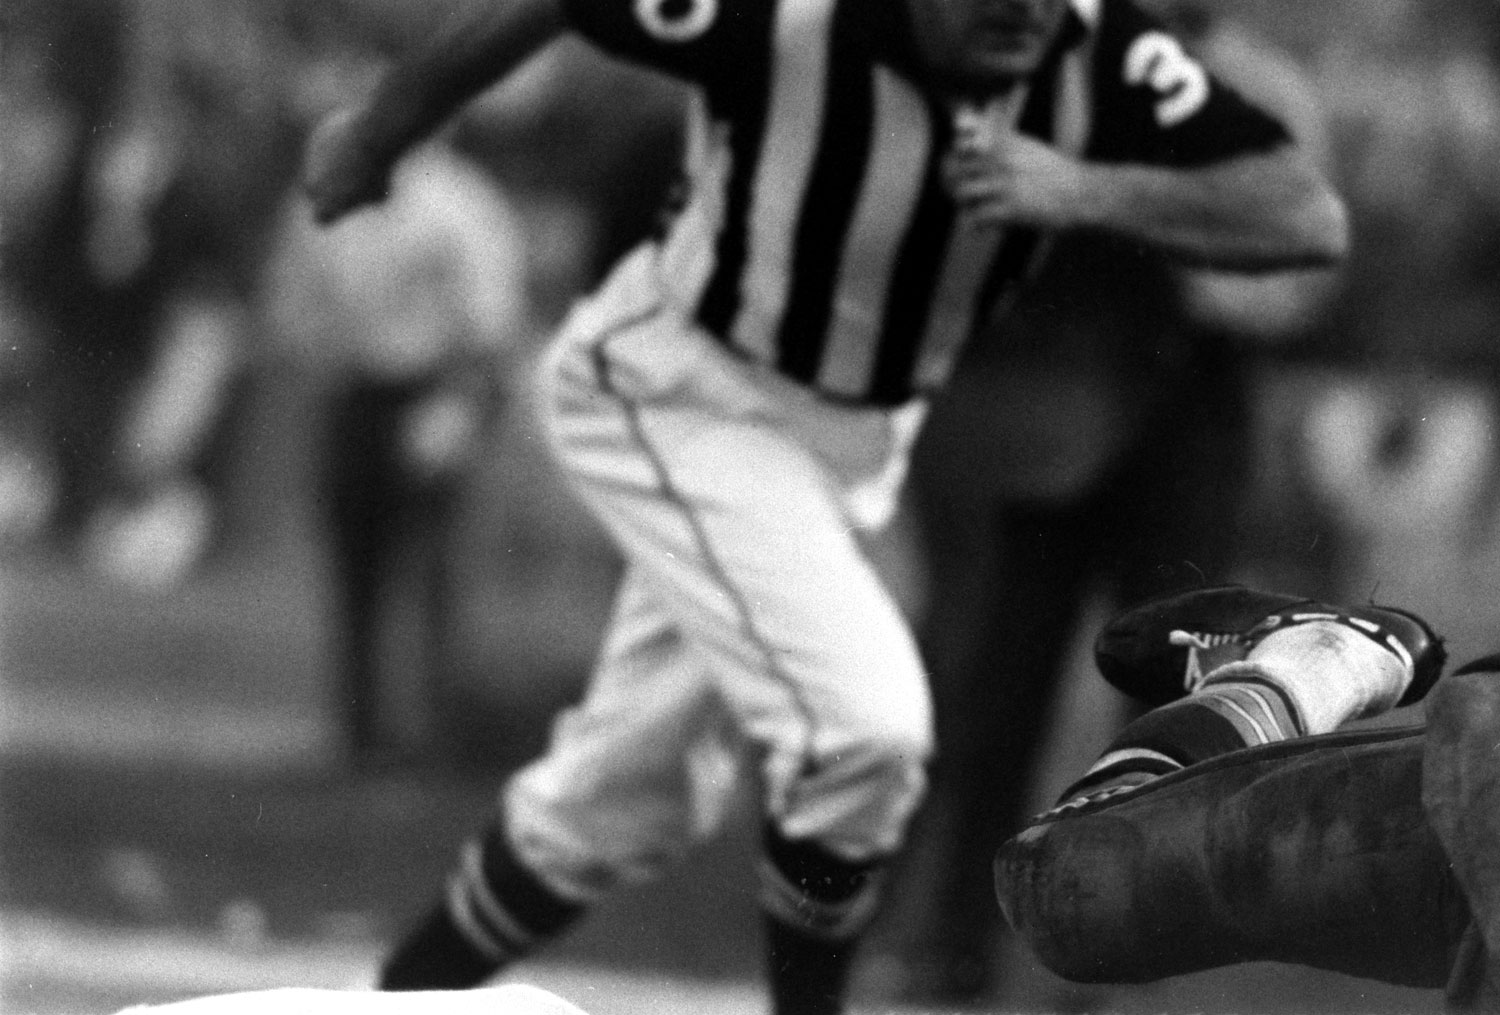 <b>Not published in LIFE.</b> Super Bowl I, 1967.